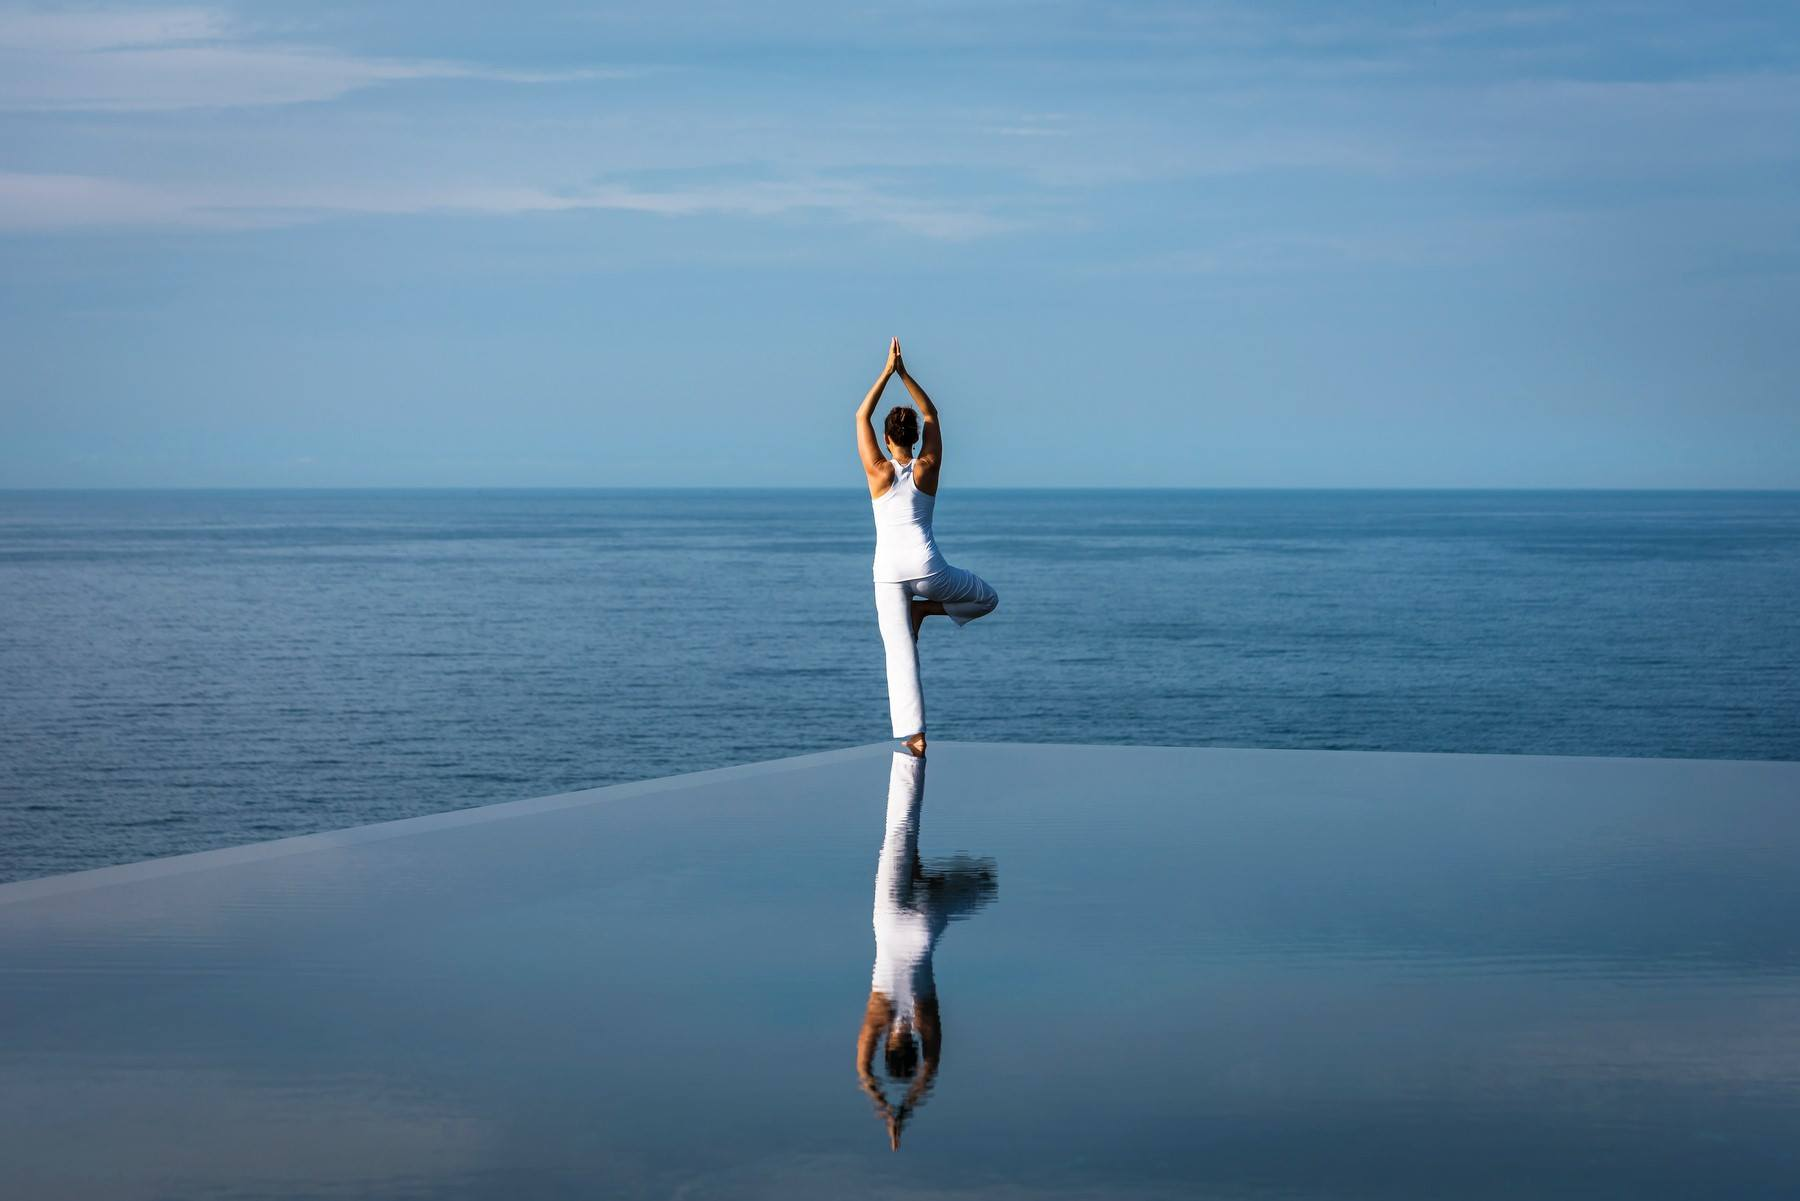 Renew your Yoga practice at Amanoi's Cliff Pool